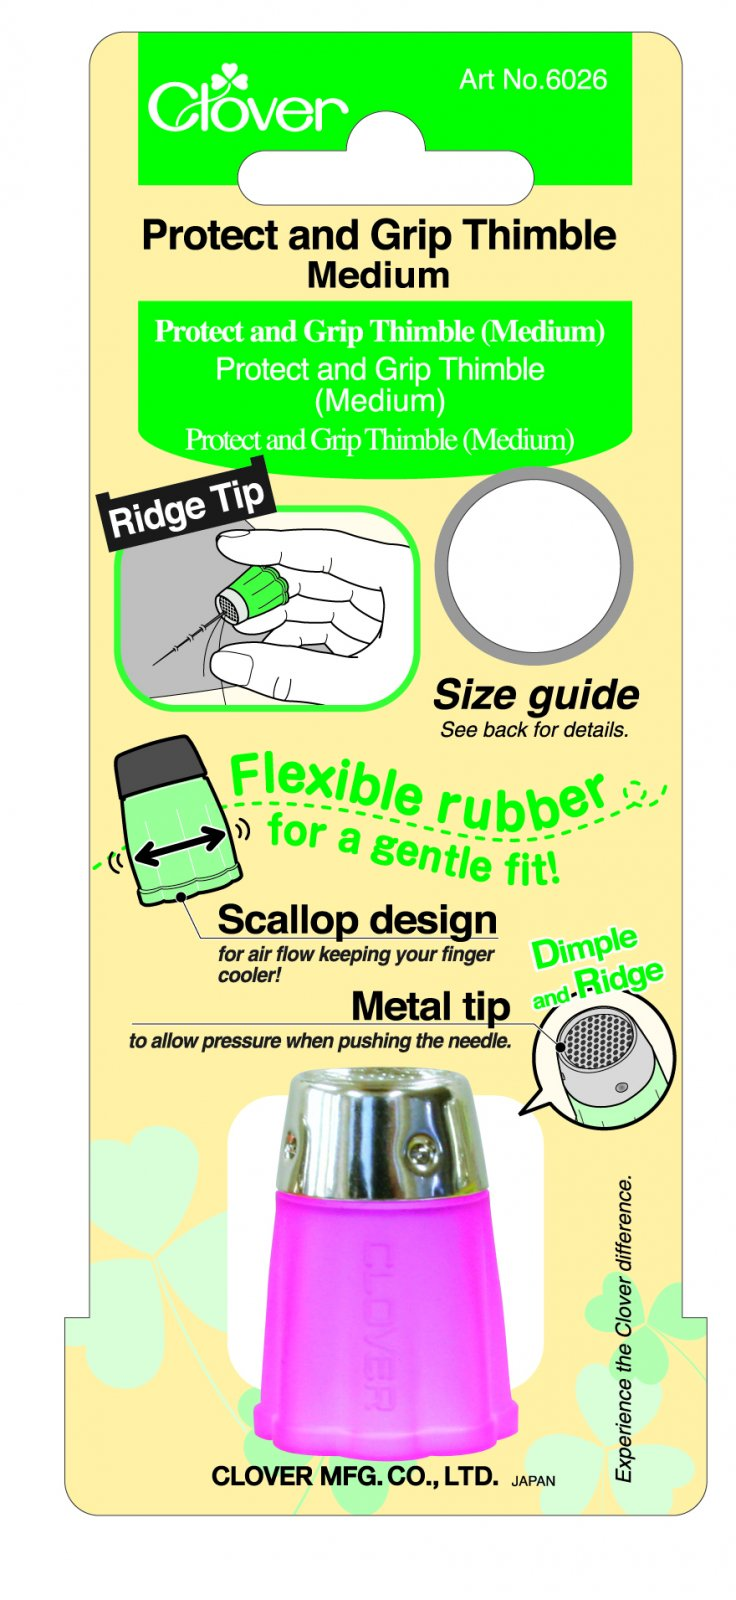 Clover - 6026 Protect and Grip Thimble (Medium)